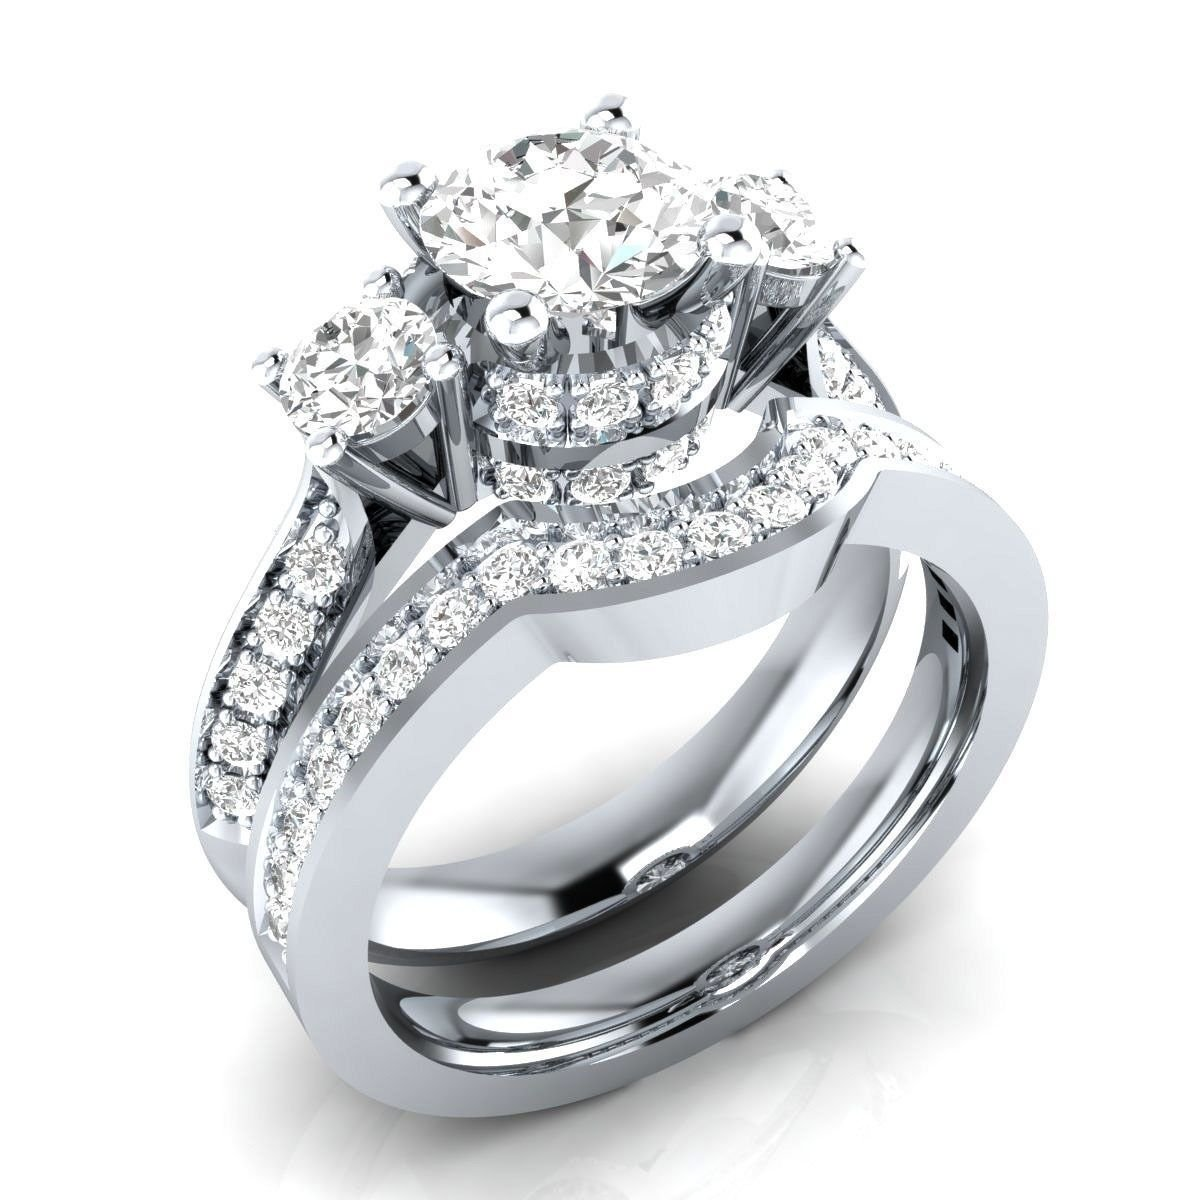 Fashion 925 Silver Jewelry White Sapphire Women Wedding Engagement Ring Size6-10